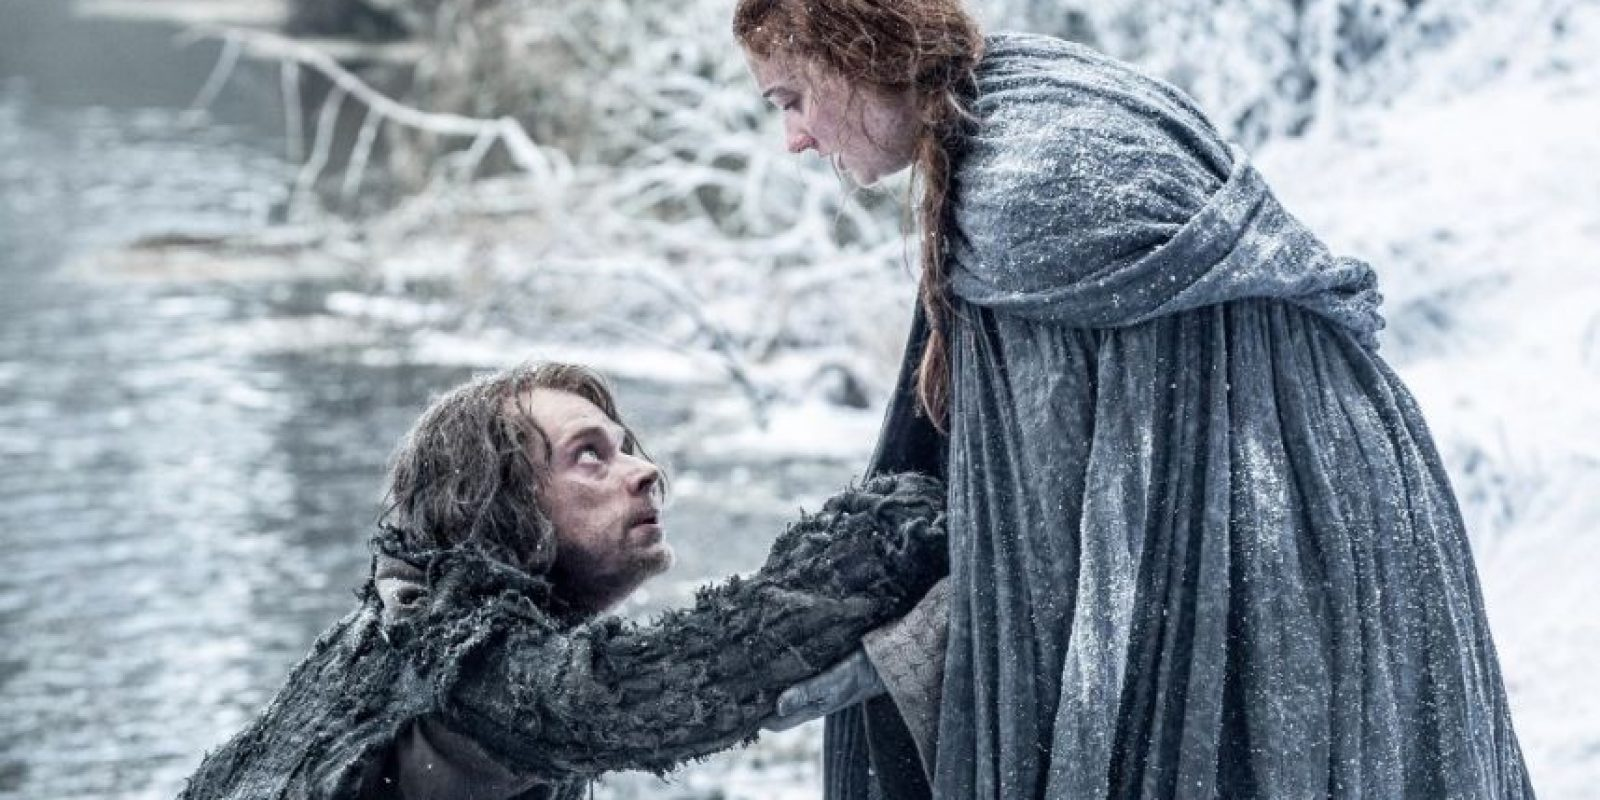 Theon Greyjoy huyó con Sansa Stark. ¿Qué les espera? Foto: Vía Facebook/Game of Thrones